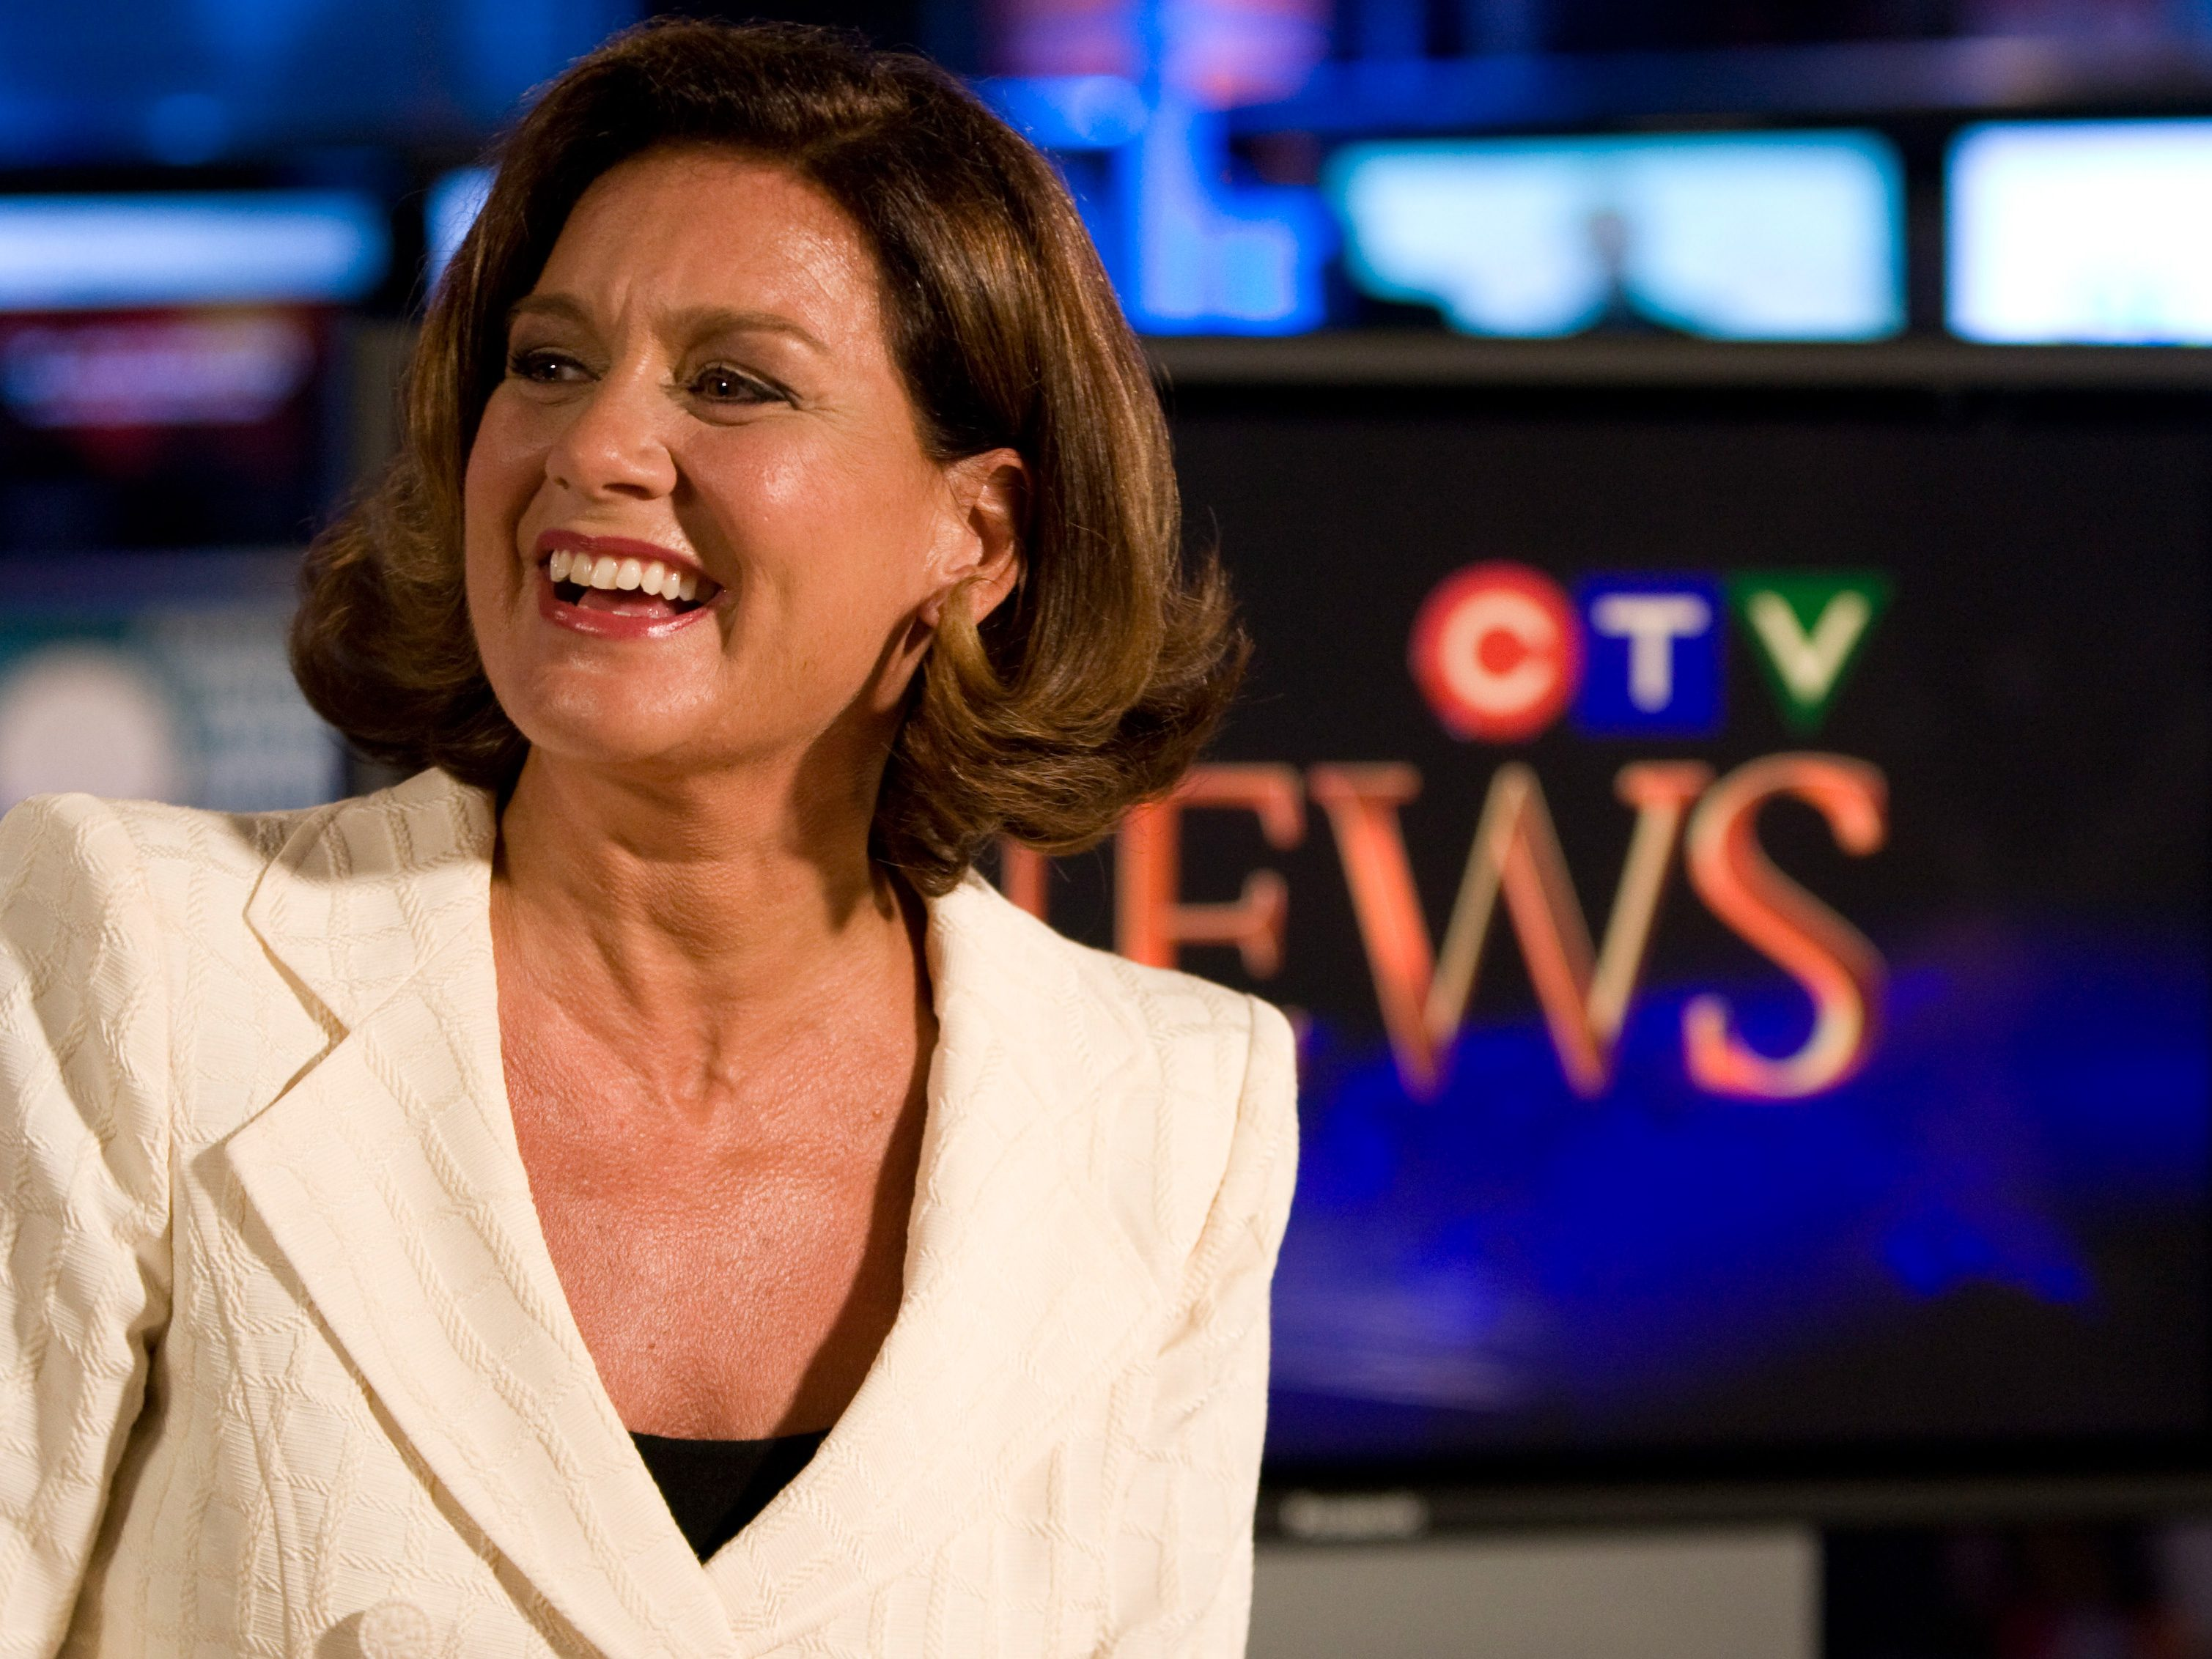 Canada's Most-Trusted Influencers, 2015